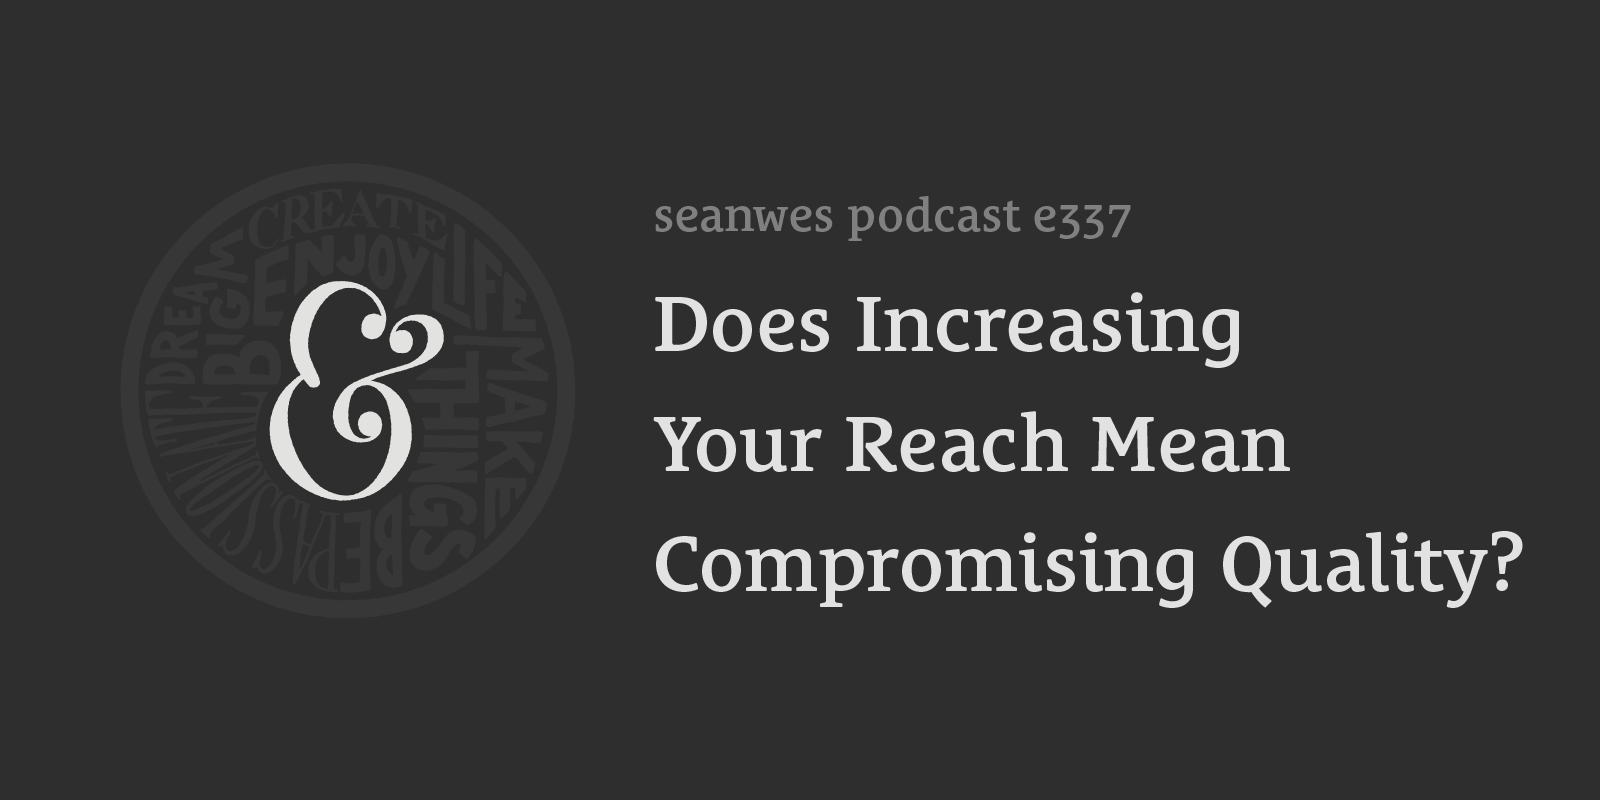 Does Increasing Your Reach Mean Compromising Quality?